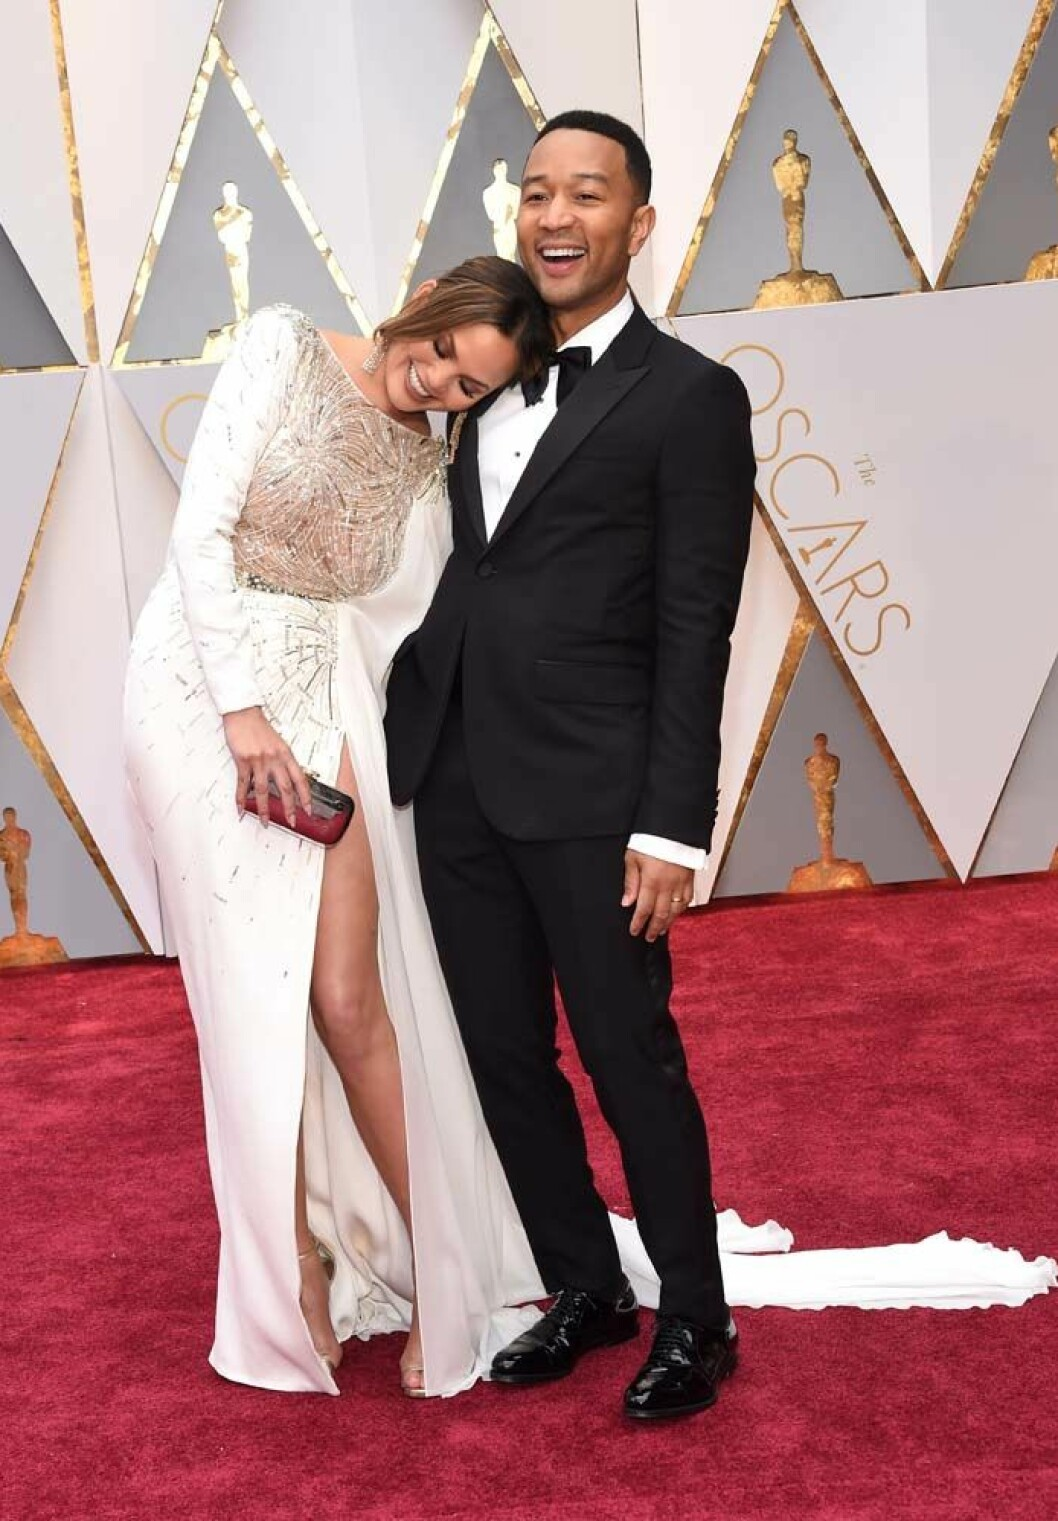 Feb 26, 2017 - Hollywood, California, U.S. - CHRISSY TEIGEN and JOHN LEGEND during red carpet arrivals for the 89th Academy Awards. (Credit Image: © Lisa O'Connor via ZUMA Wire) (c) Zumapress / IBL